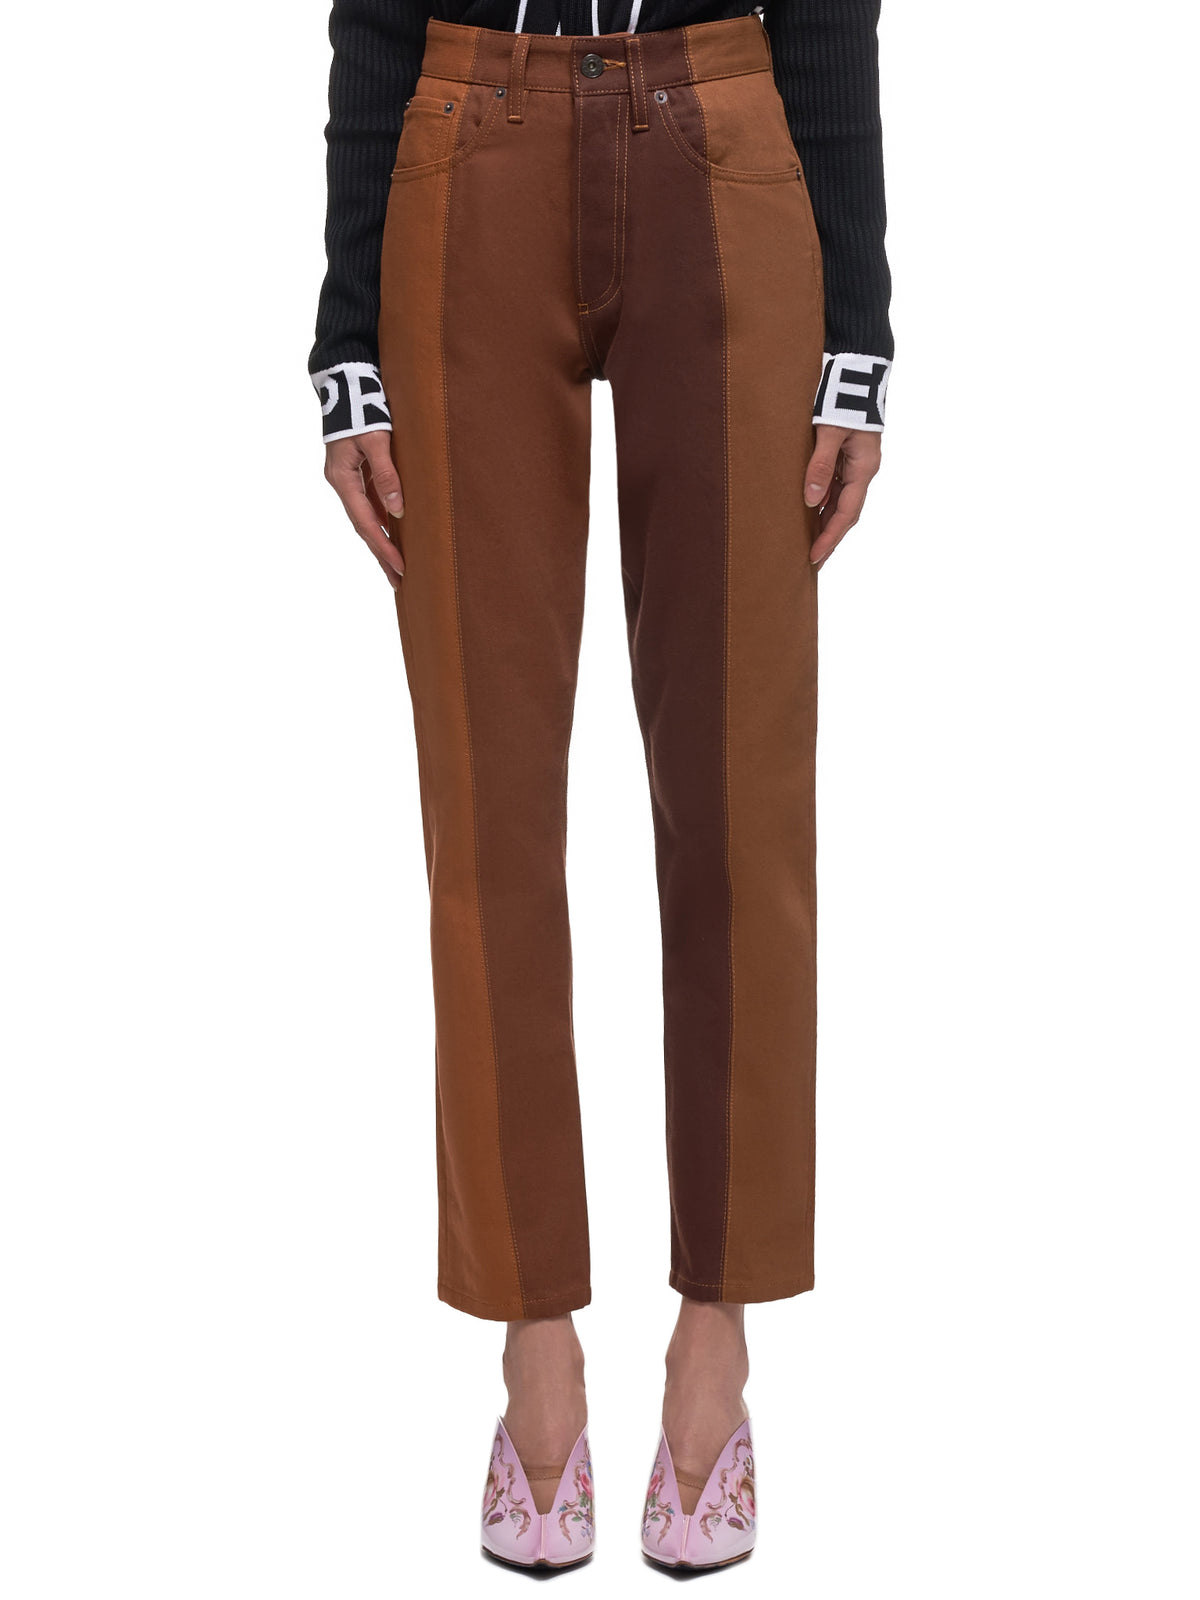 Two-Tone W Jeans (WJEAN24-S18-D05-BROWN-RUST)